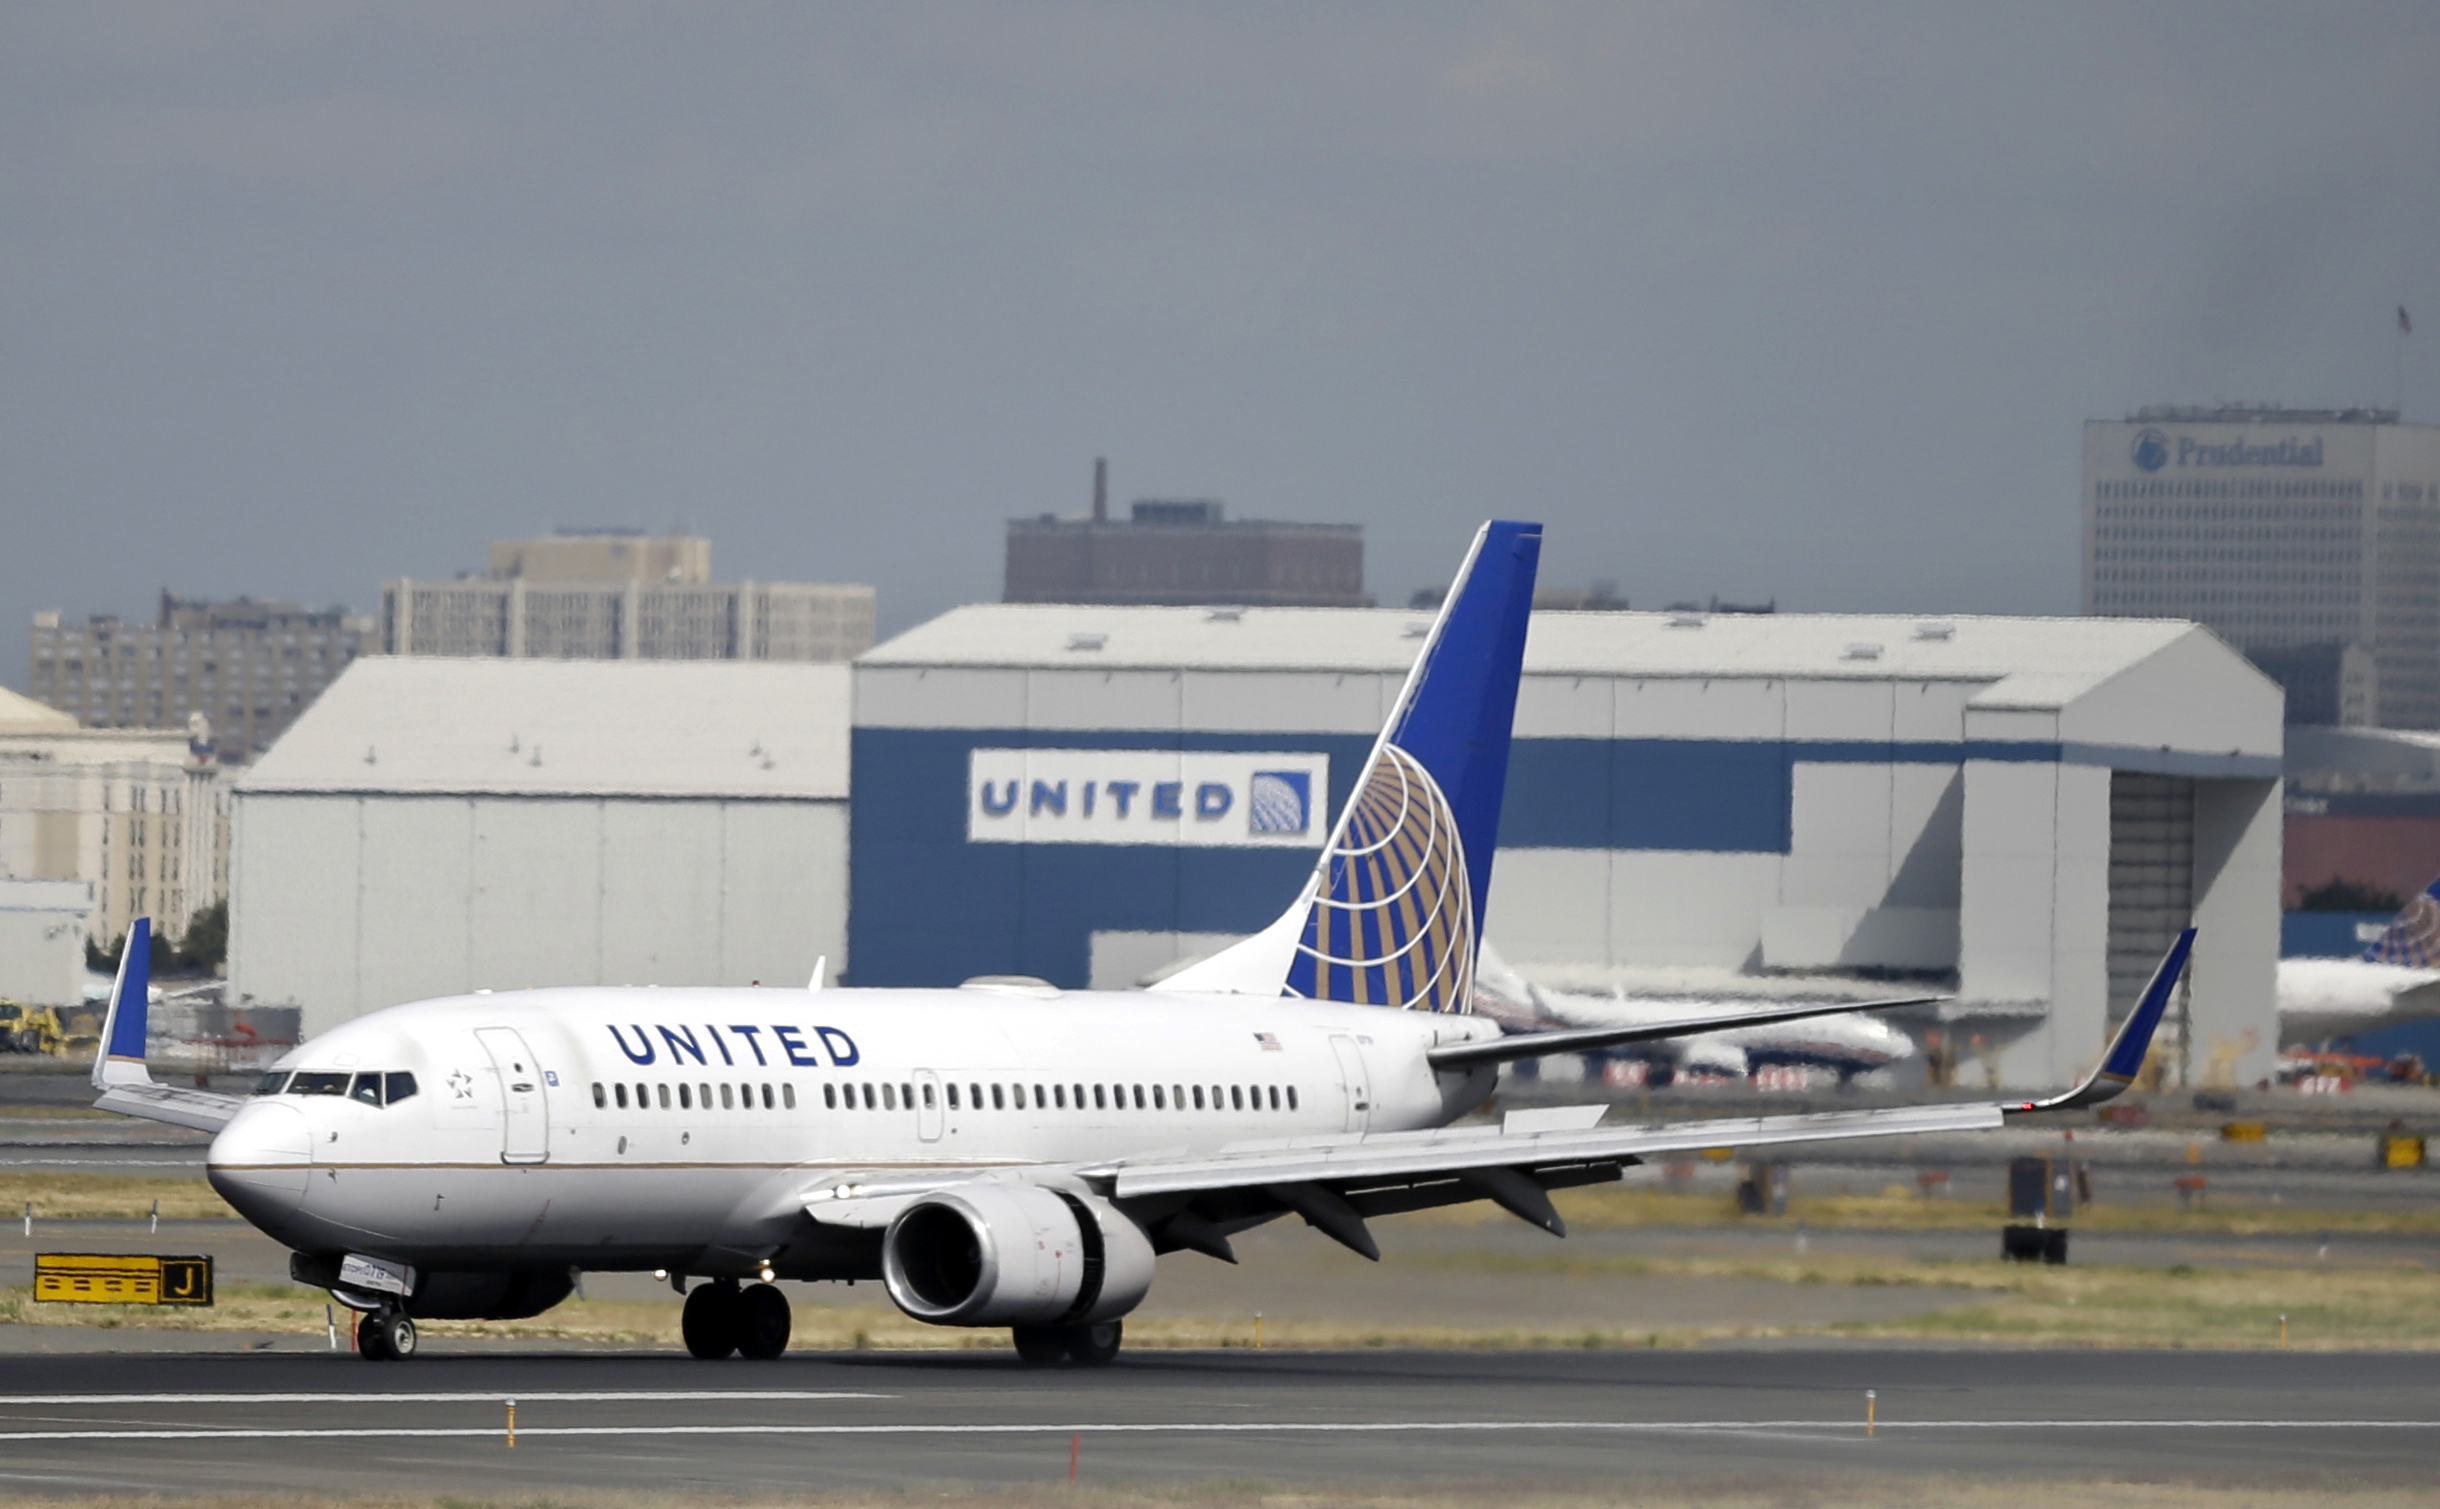 Air traffic halted at Newark Liberty Airport because of an 'airport emergency'